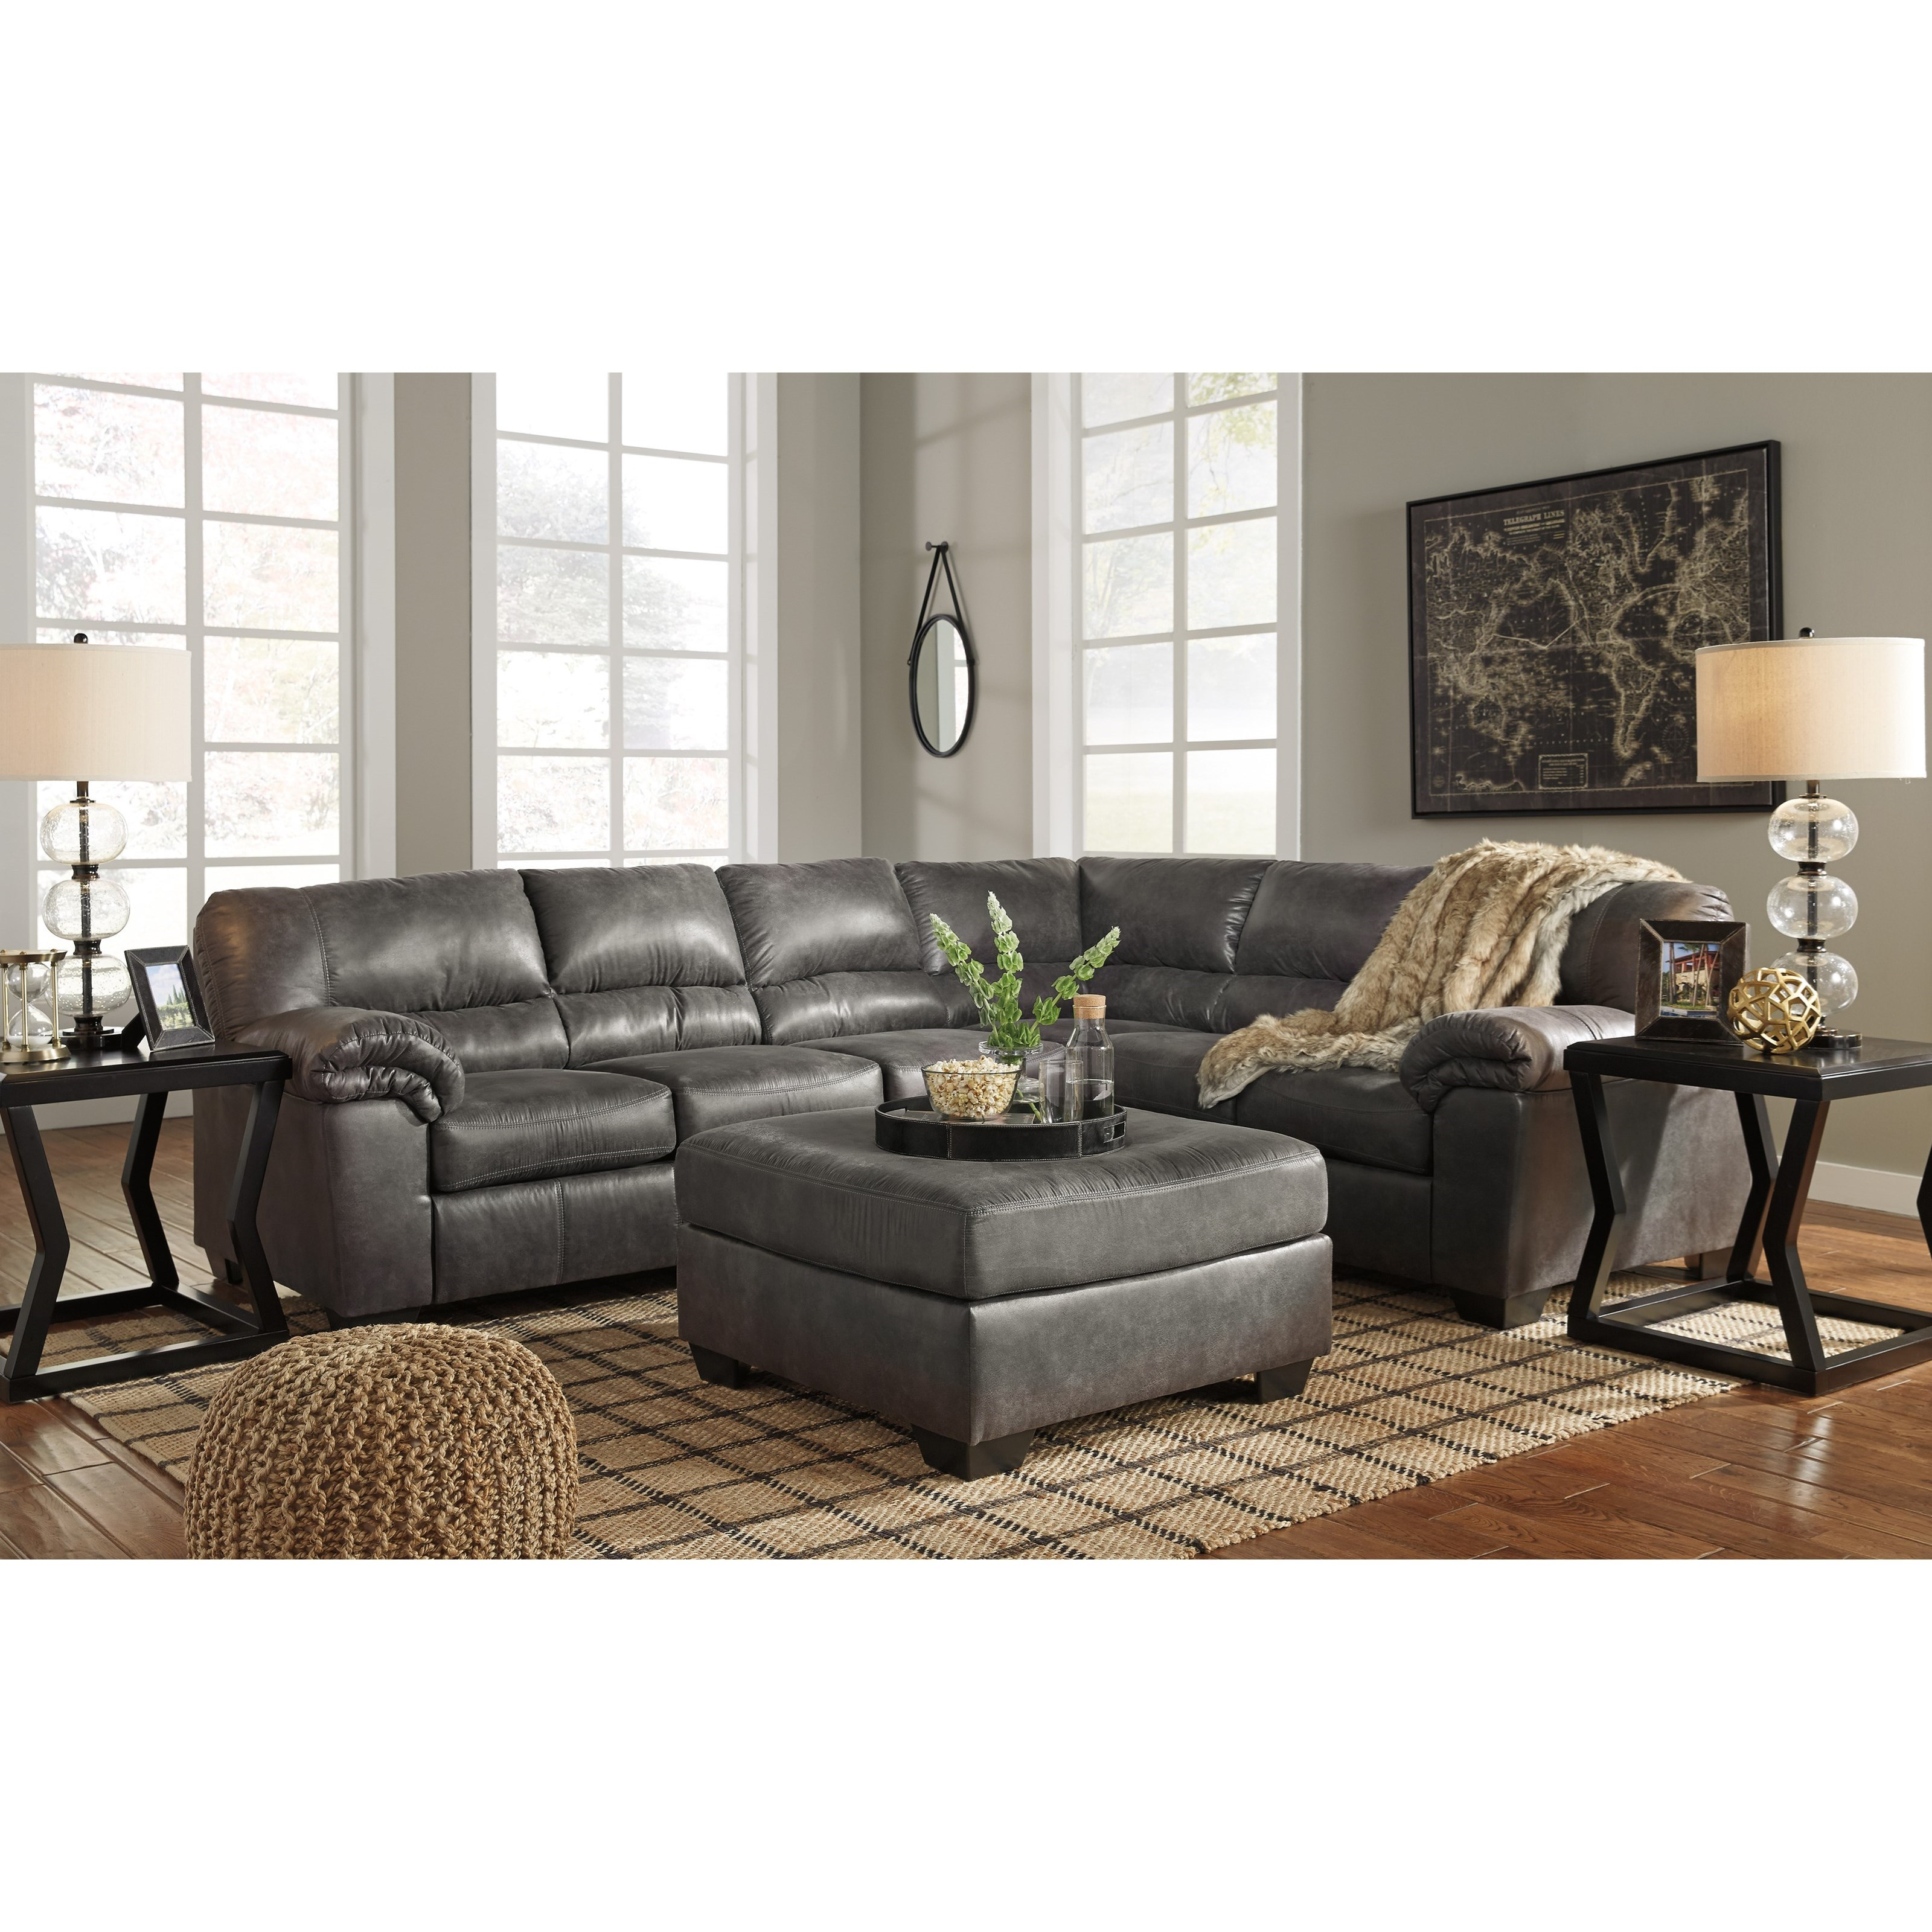 Signature Design By Ashley Bladen Stationary Living Room Group Household Furniture